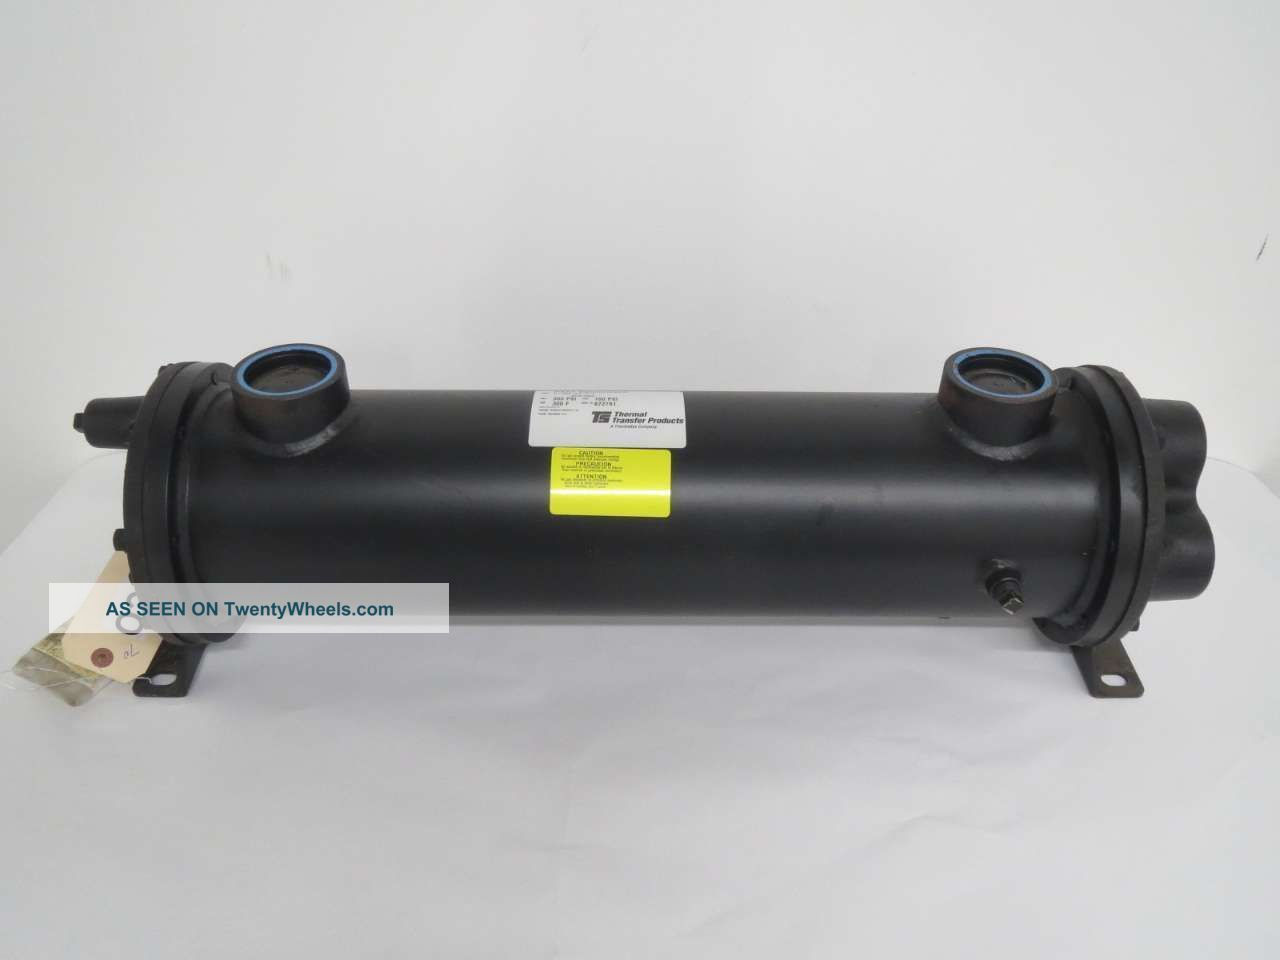 Thermal Transfer C - 1024 - 5 - 6 - F Fluid Heat Exchanger 1 - 1/2 In Npt B442777 Heating & Cooling Equipment photo